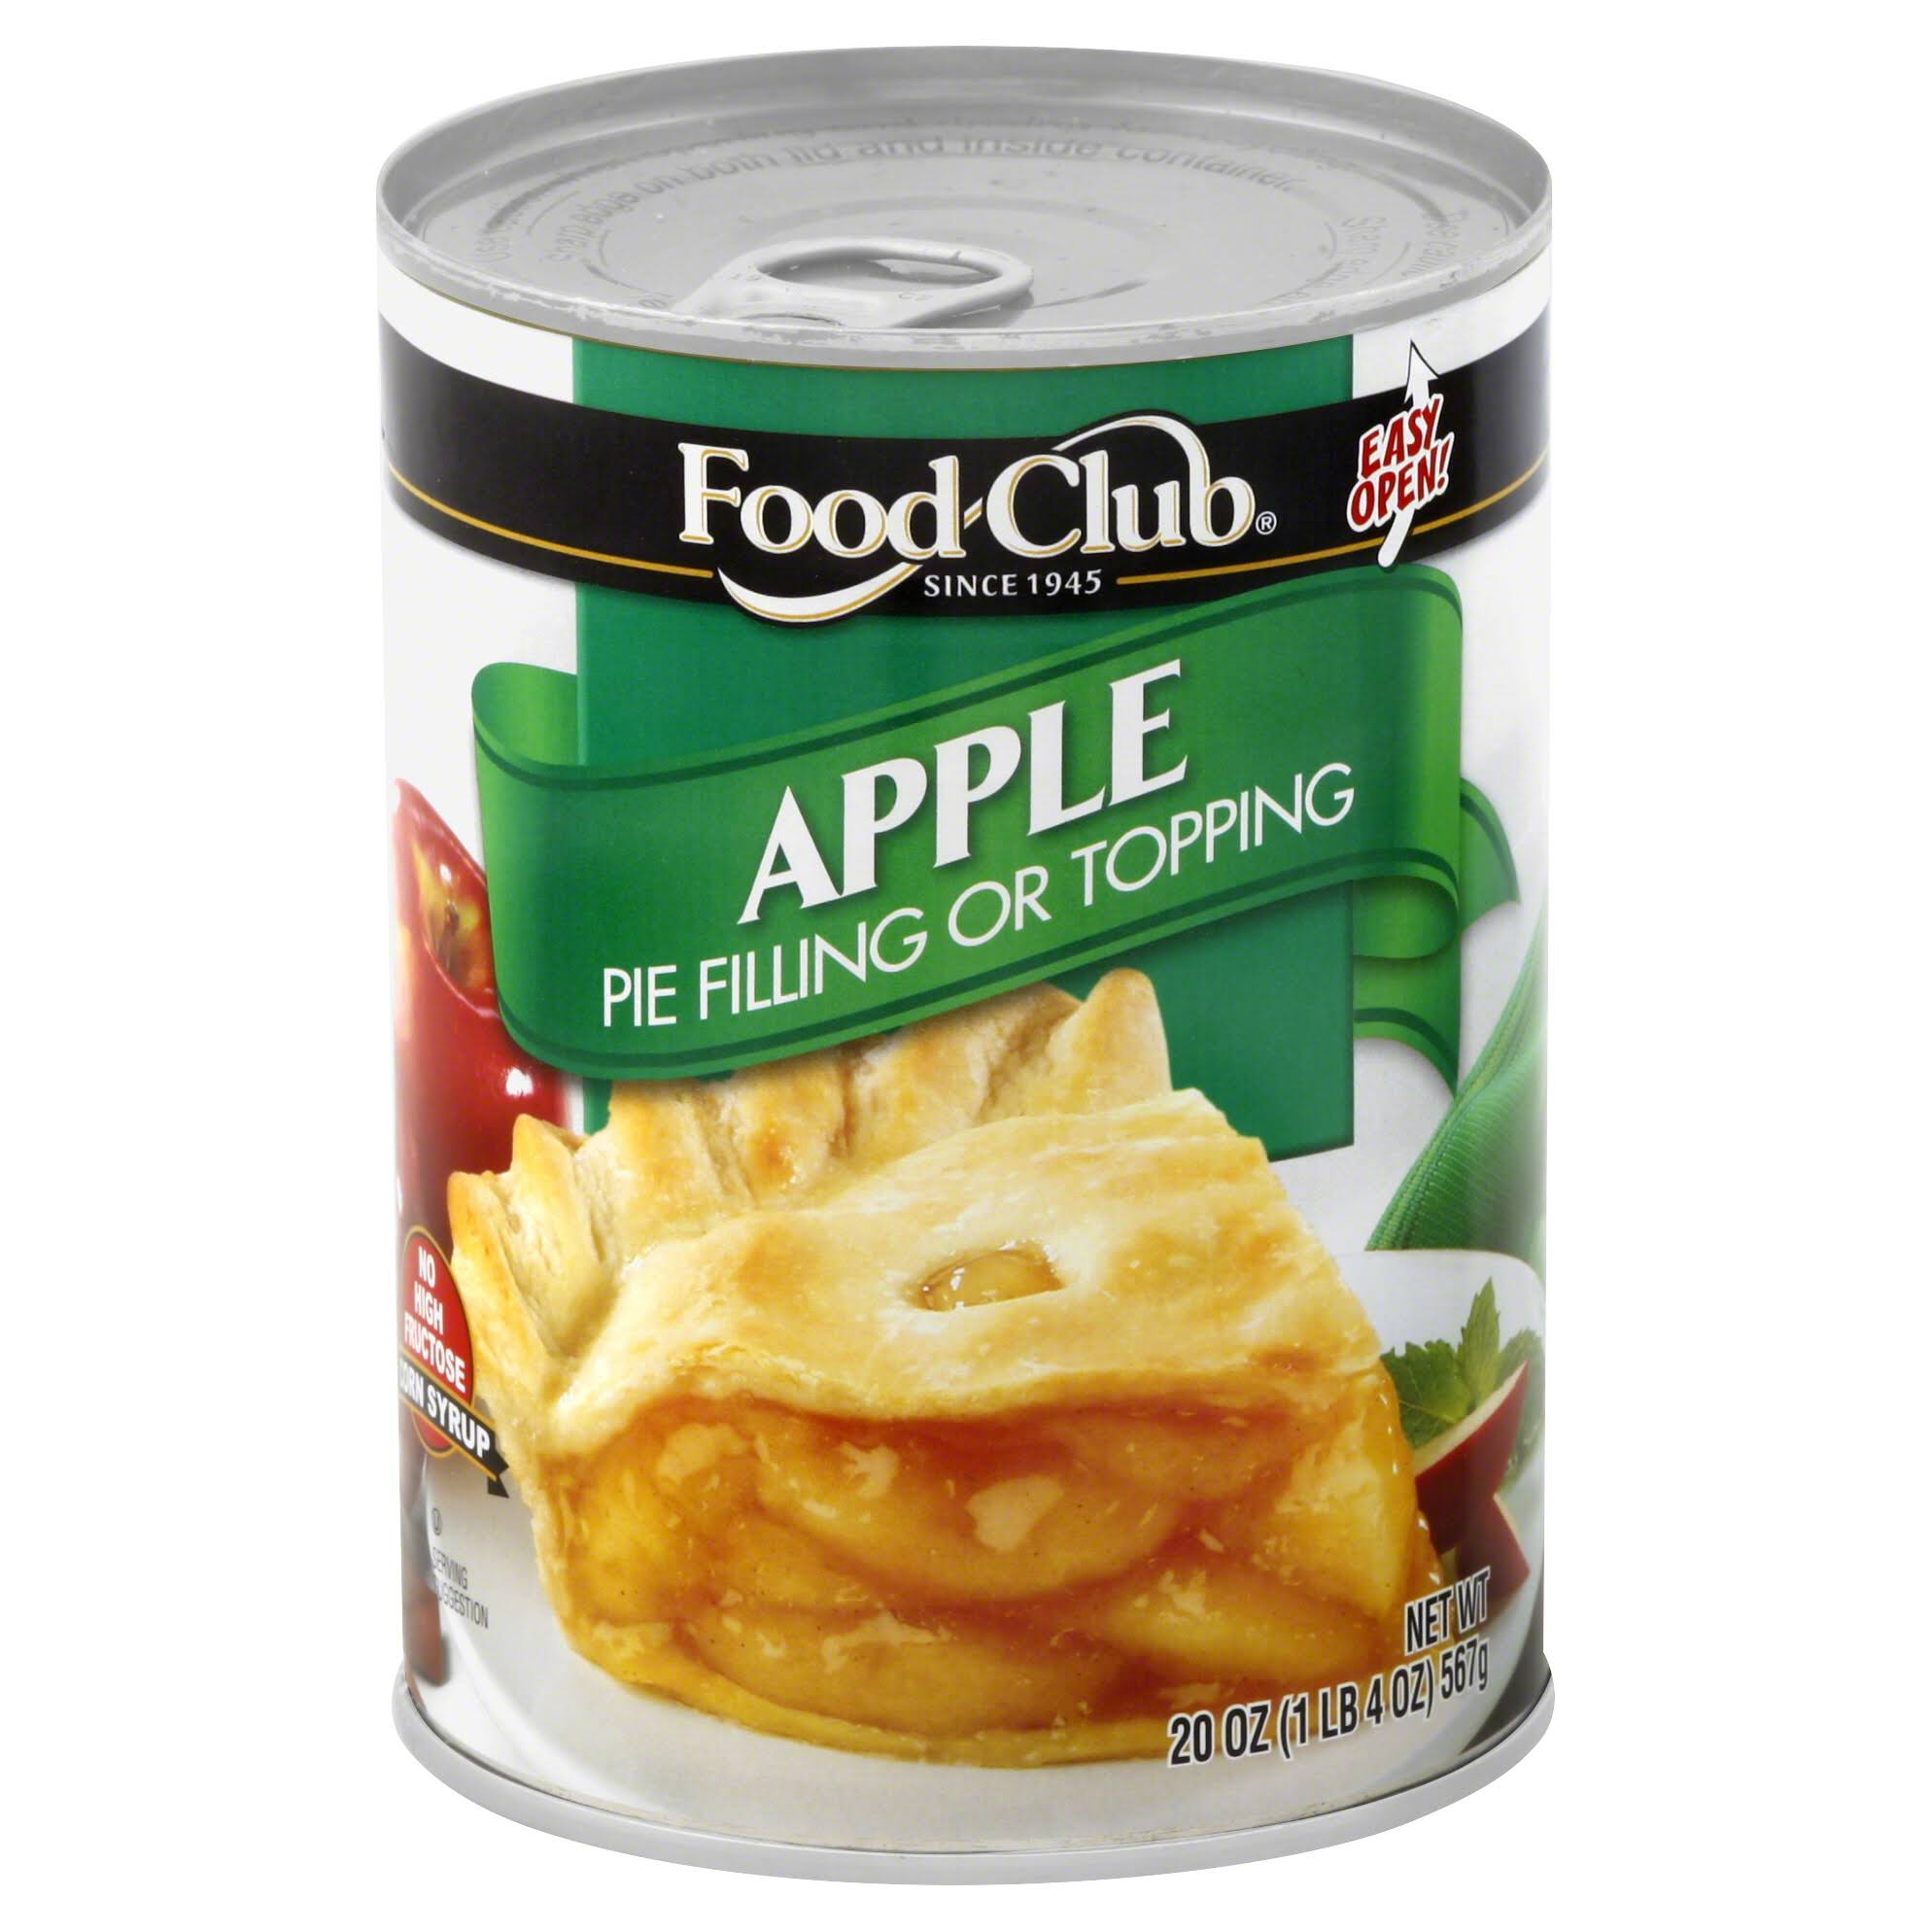 Food Club Pie Filling or Topping, Apple - 20 oz